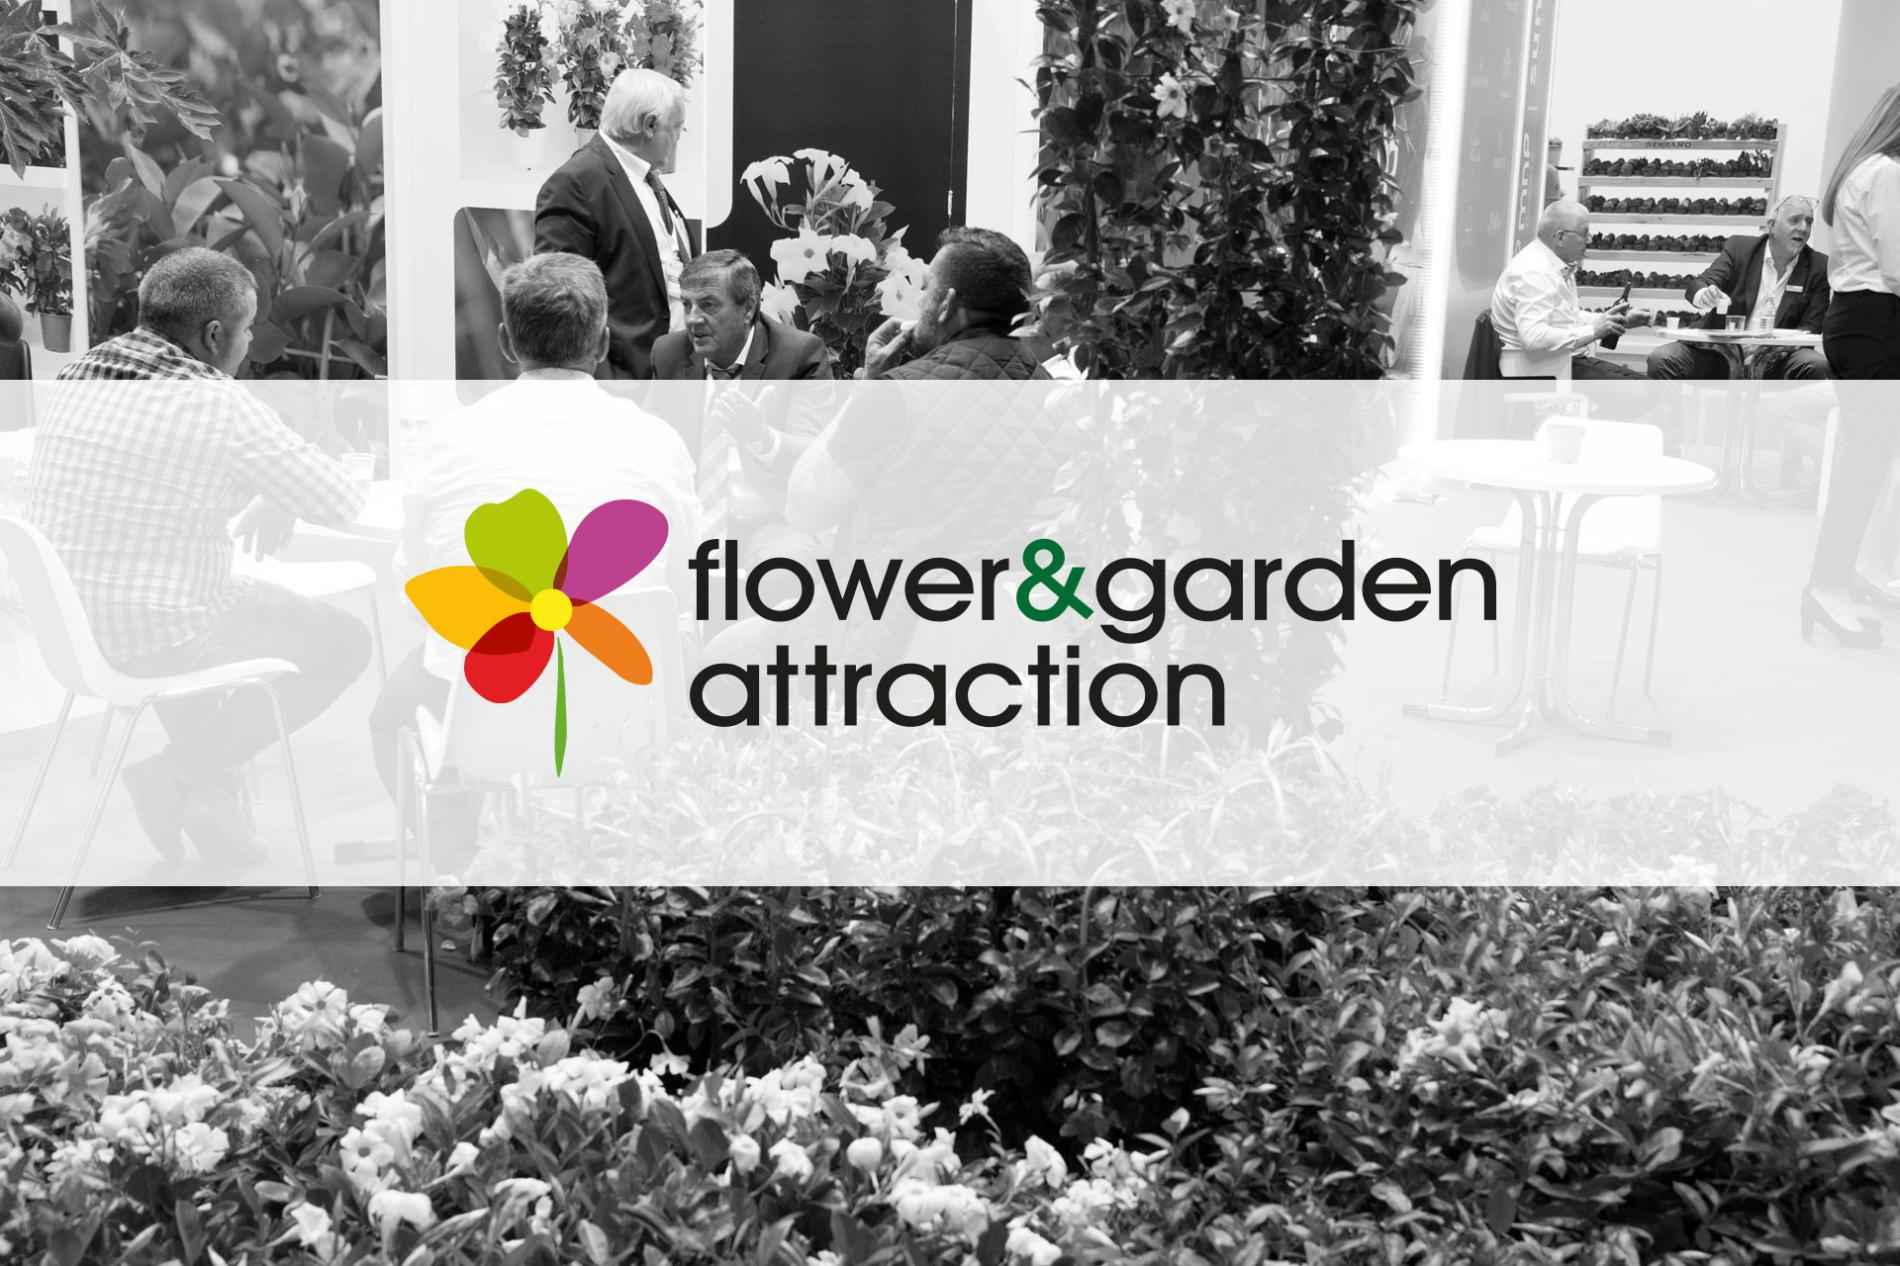 Flower attraction & garden